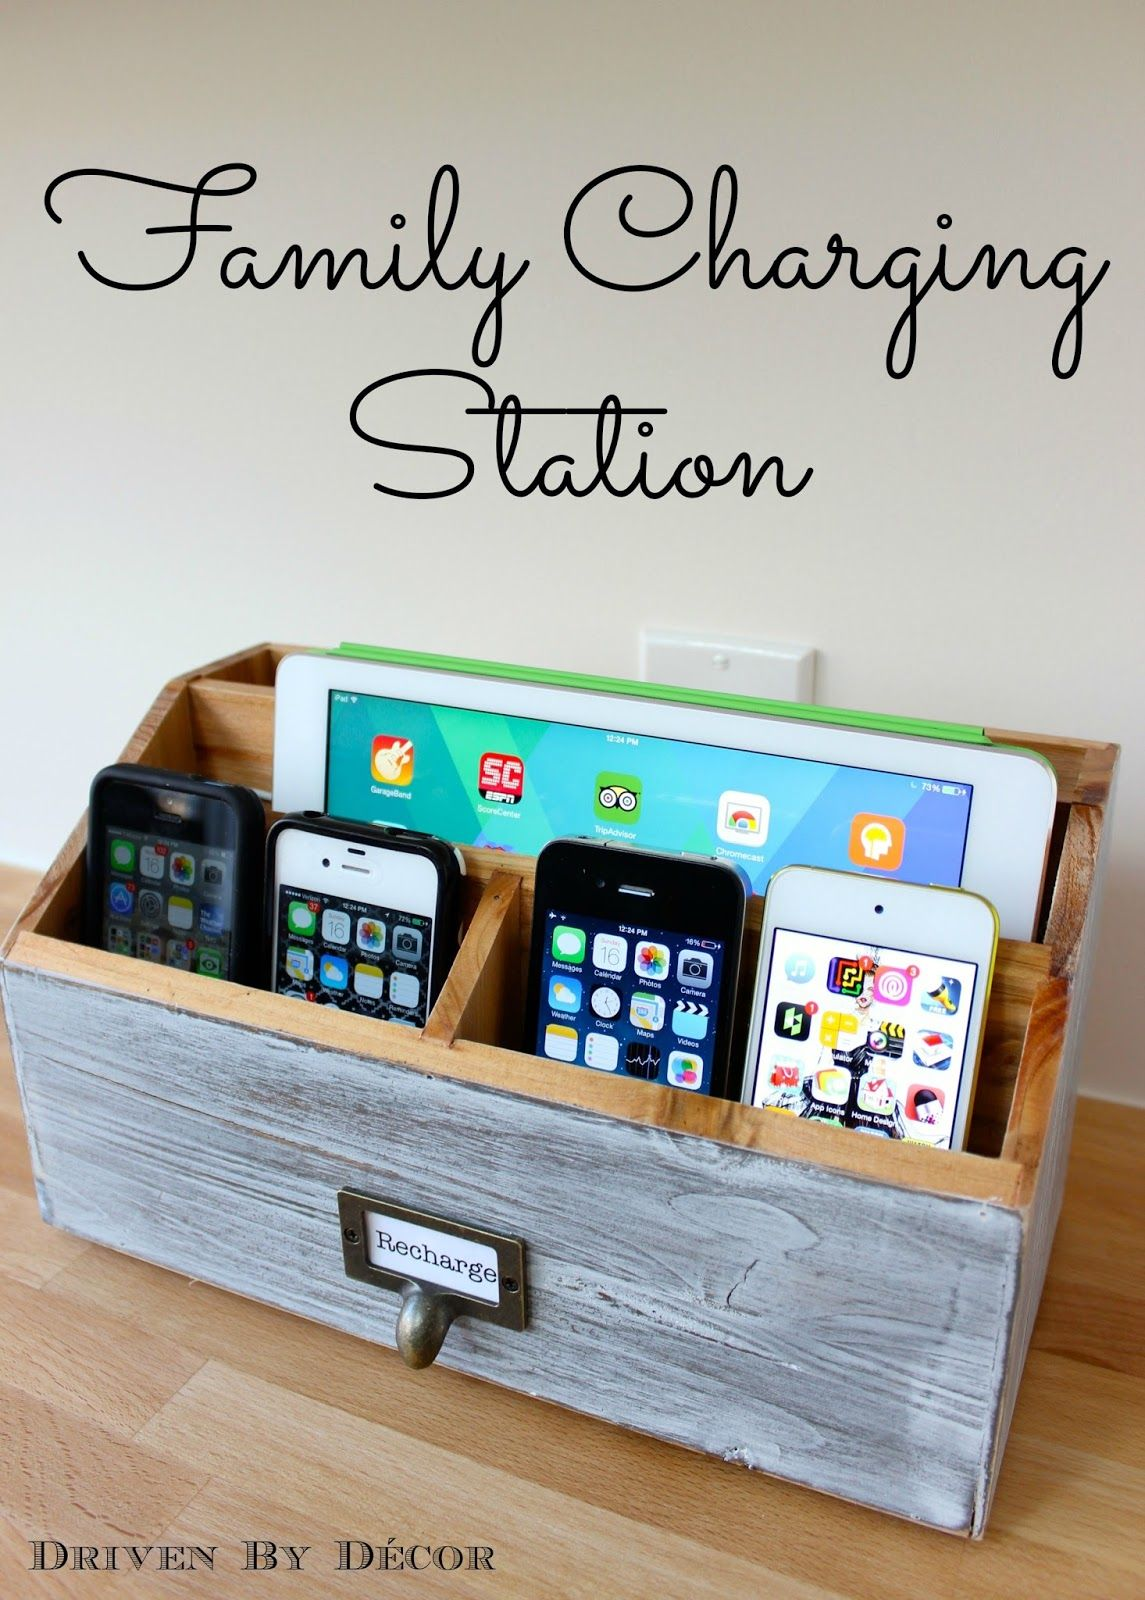 DIY Family Charging Station | DIY Building Projects | Pinterest ...